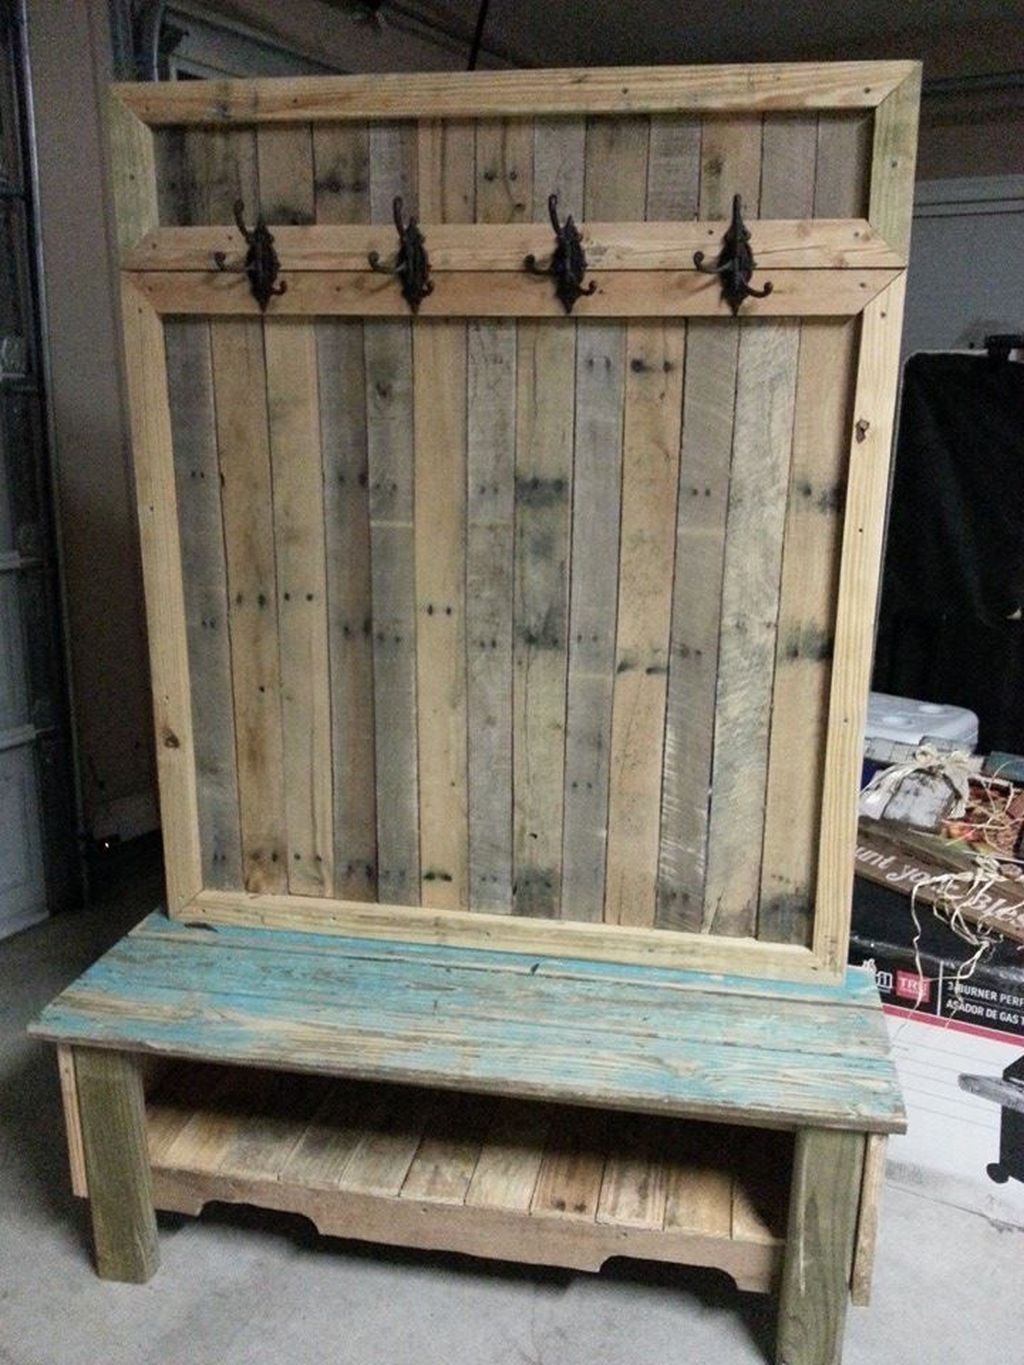 34 Trendy Wood Pallet Furniture Design Ideas To Increase Your Home Design